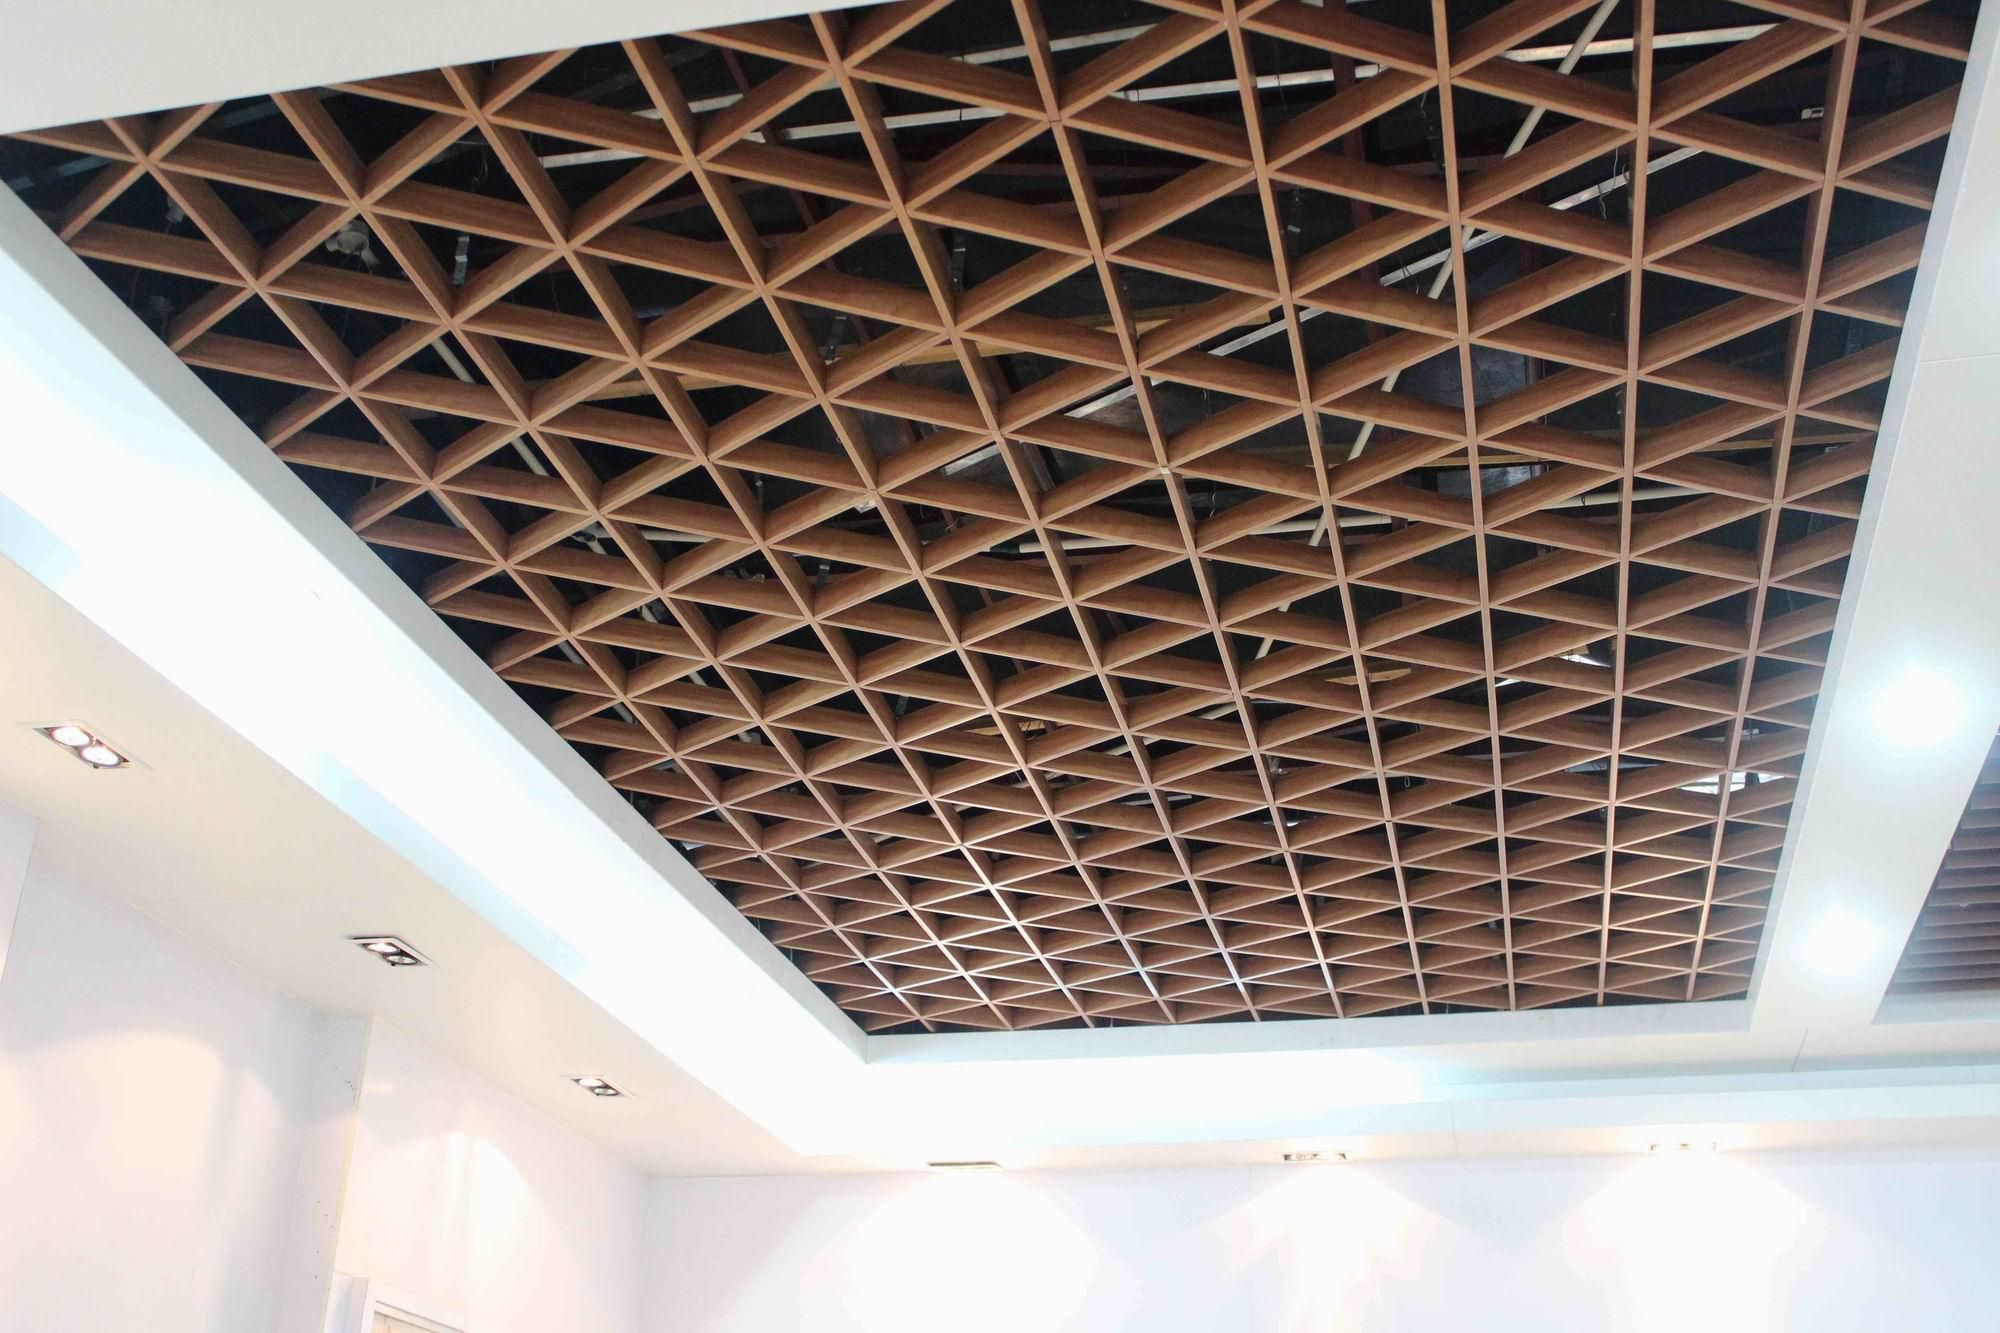 Commercial Grade Ceiling Tiles All Home Design Ideas Kitchen Uk Falseceilingdiningprojects